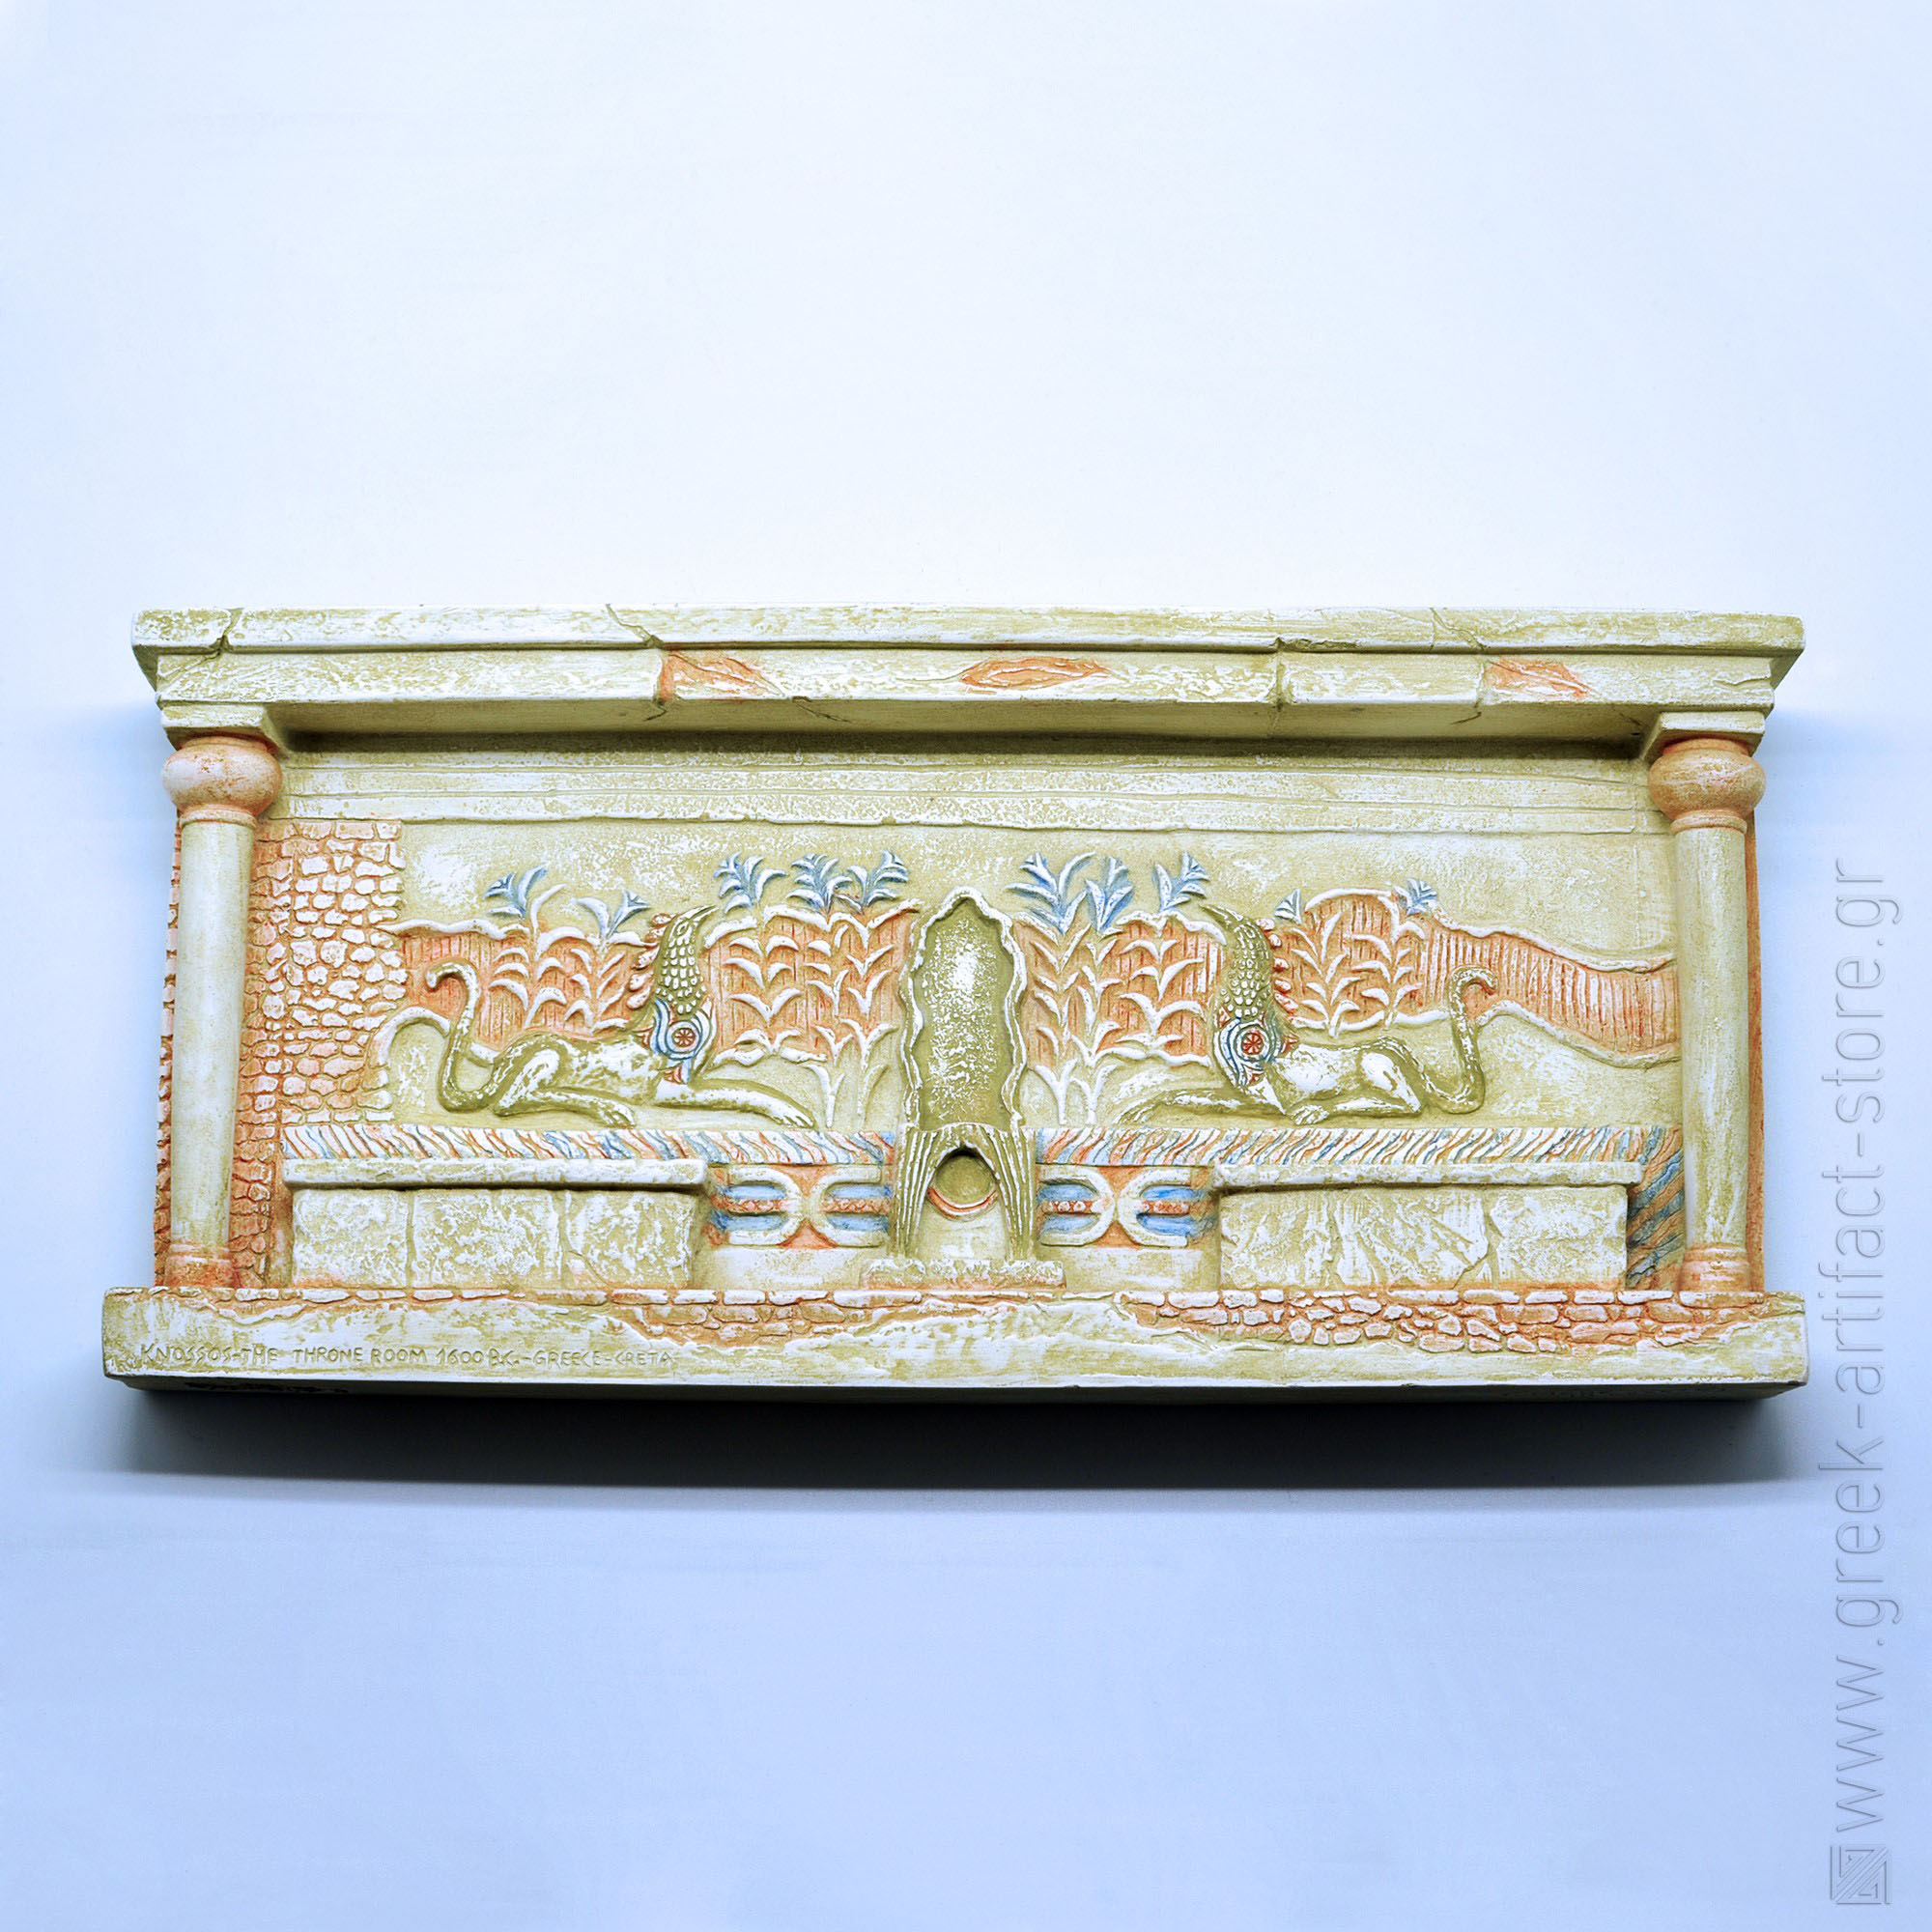 The Throne Room relief (40X20 cm)